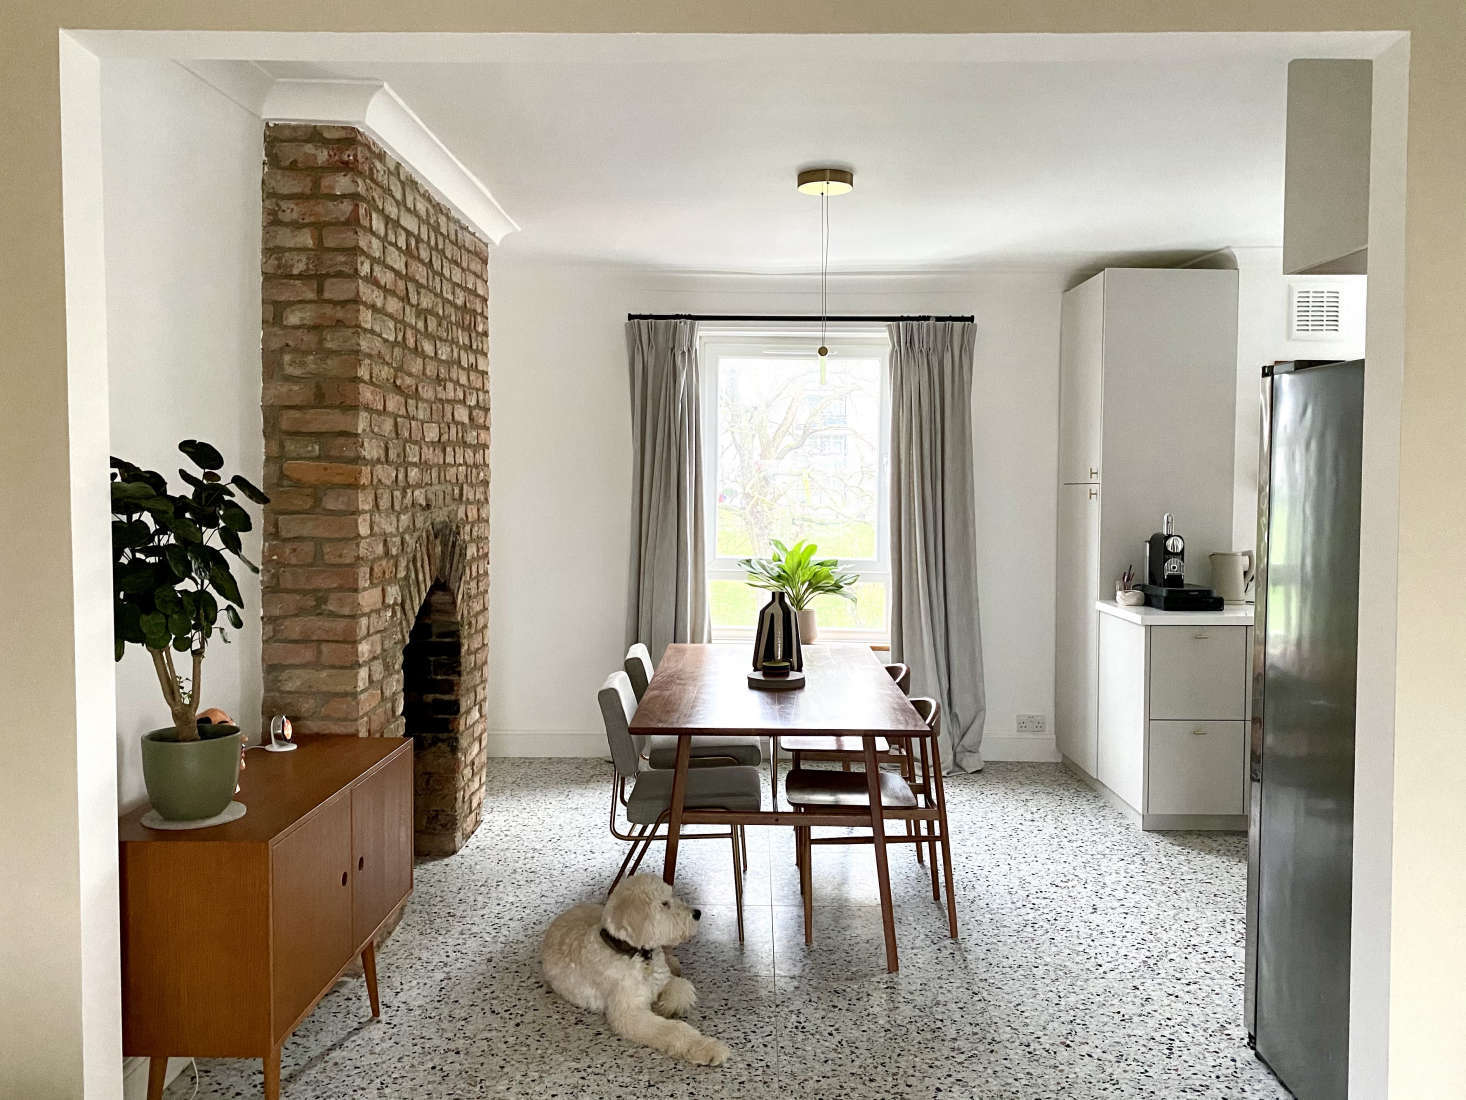 The kitchen opens to the dining area with a newly revealed brick fireplace formerly fronted by a reproduction cast-iron—&#8